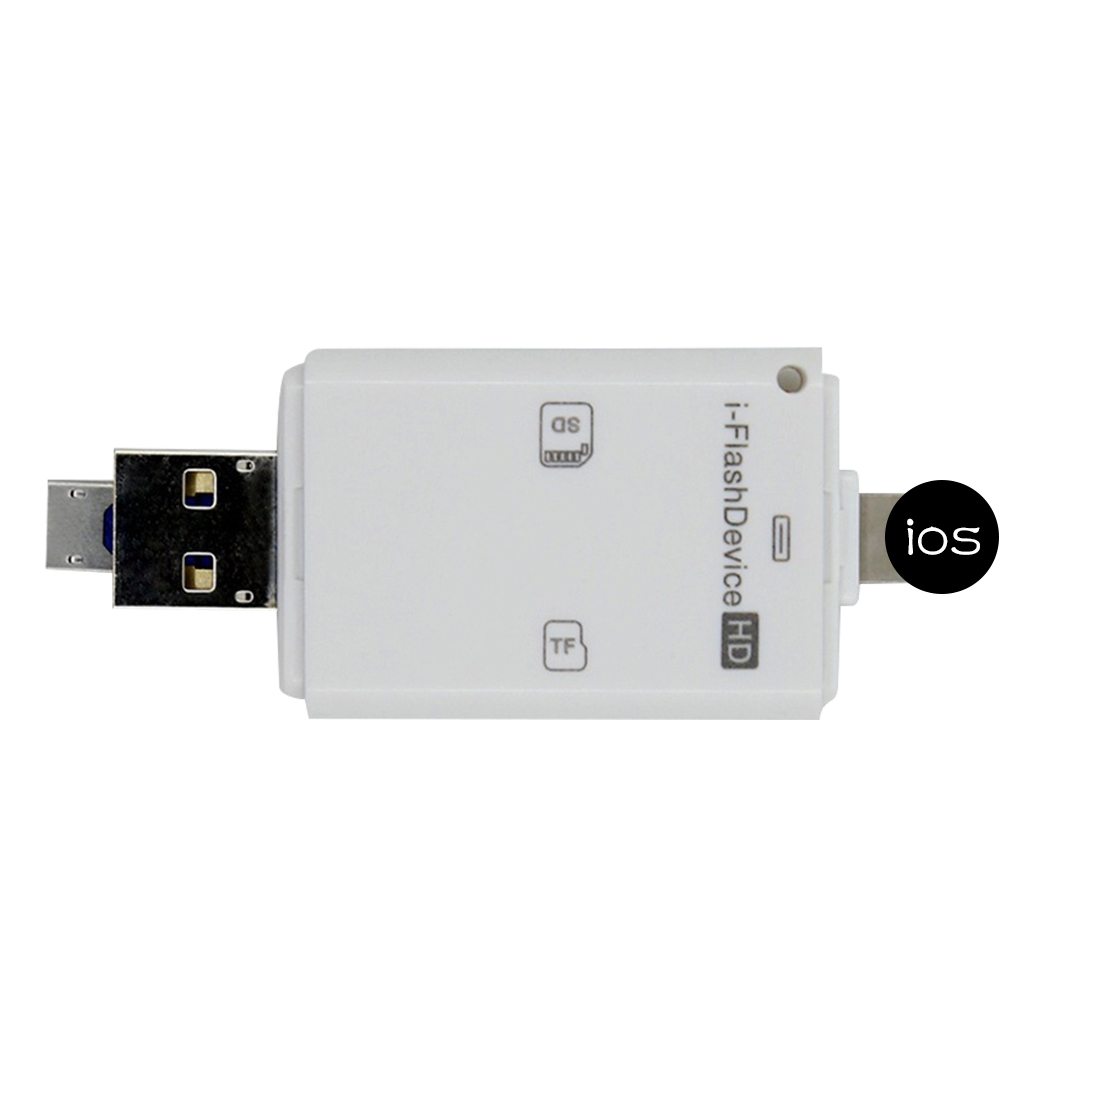 Etmakit 3in1 lector Micro USB Micro SD SDHC TF tarjeta SD para iPhone 5/5S/6/6 7 plus/ipad pro air/Samsung/LG/HTC Andrid OTG teléfonos